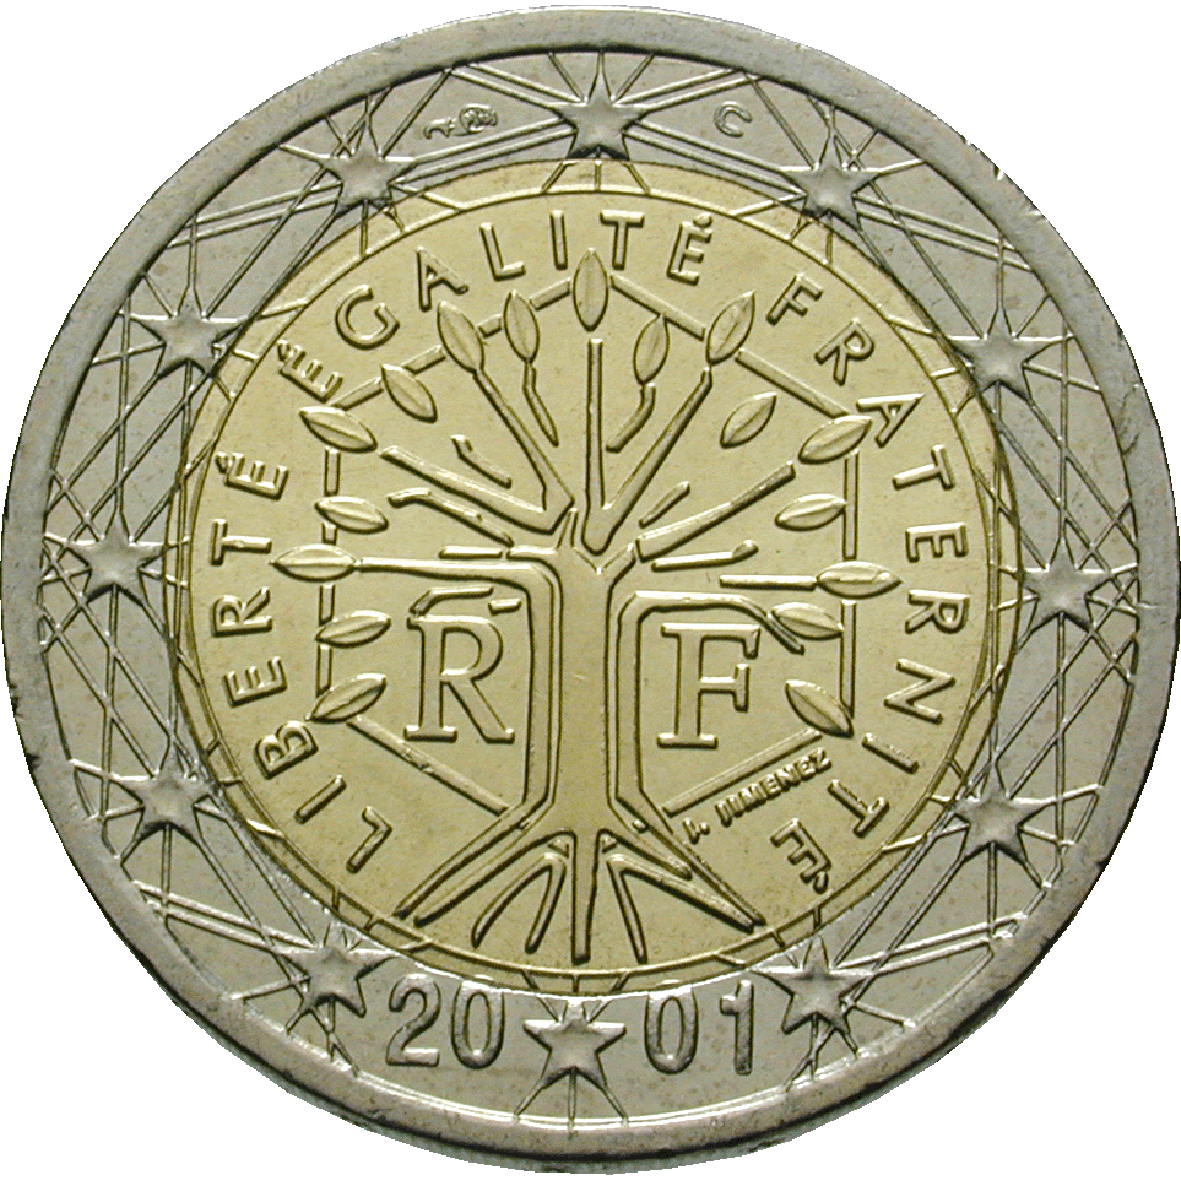 Republic of France, 2 Euros 2001 (reverse)